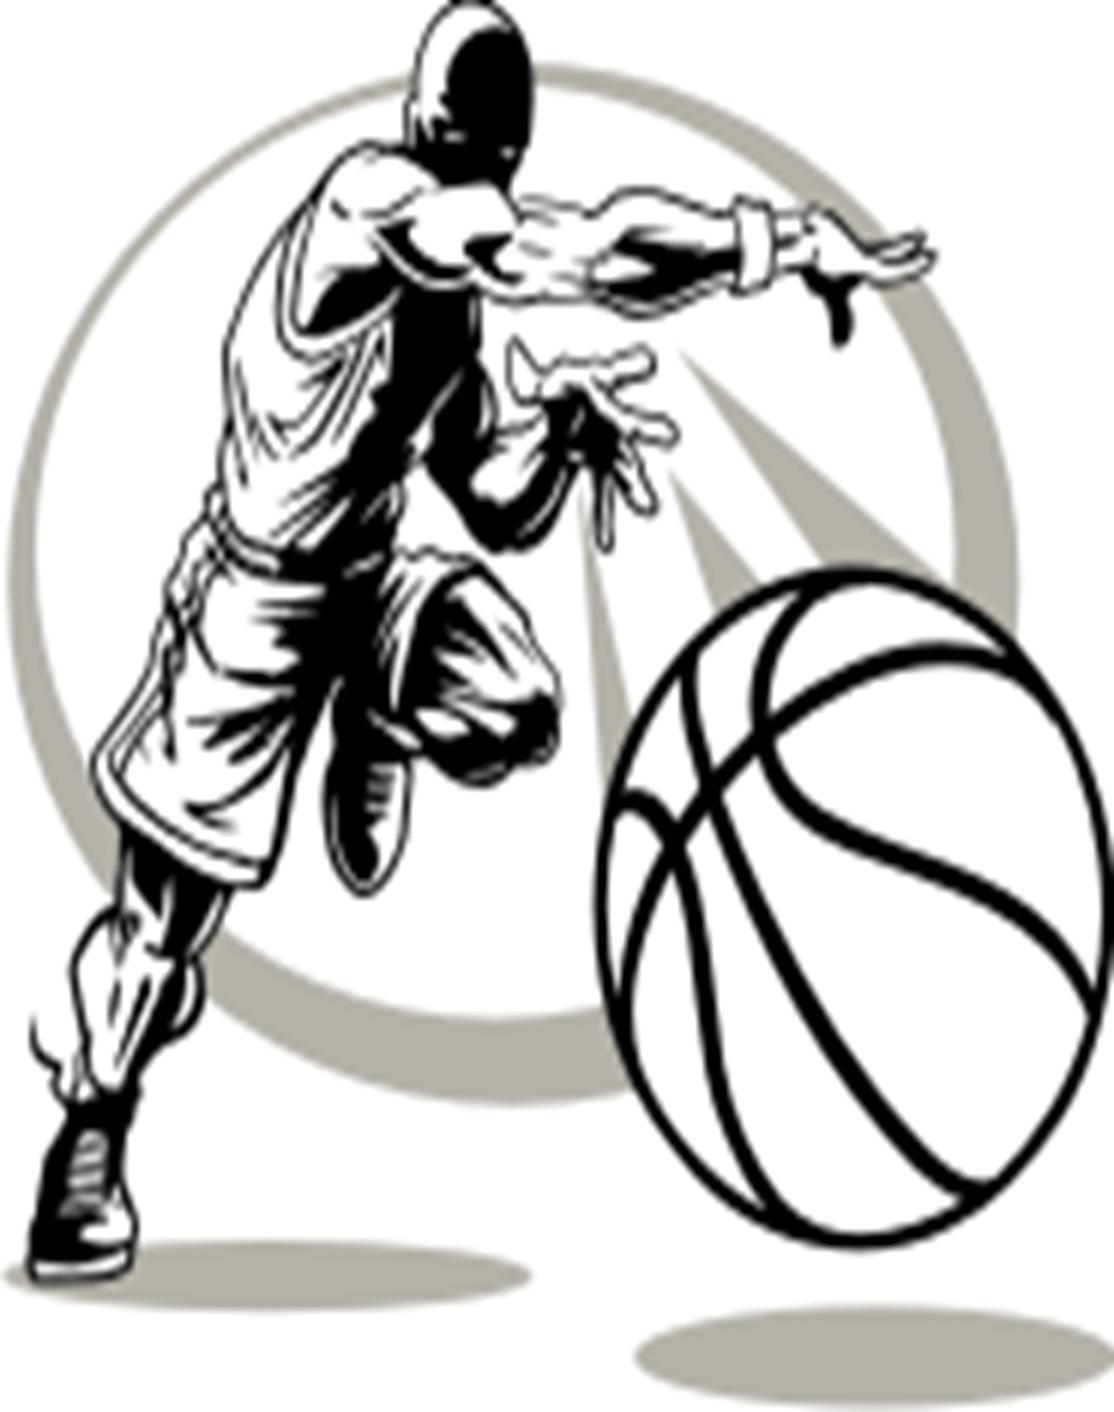 Basketball Team Clip Art Black And White